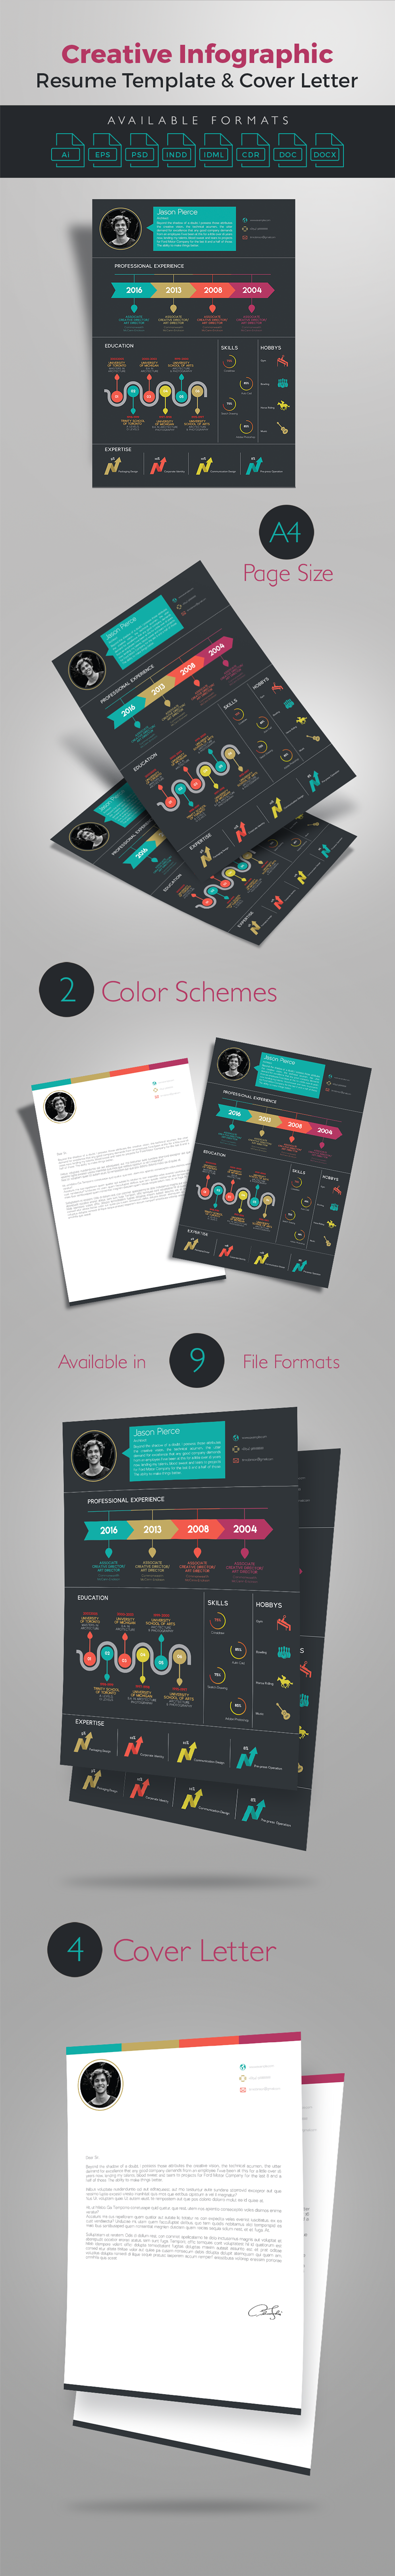 Creative Infographic Resume Template With Cover Letter